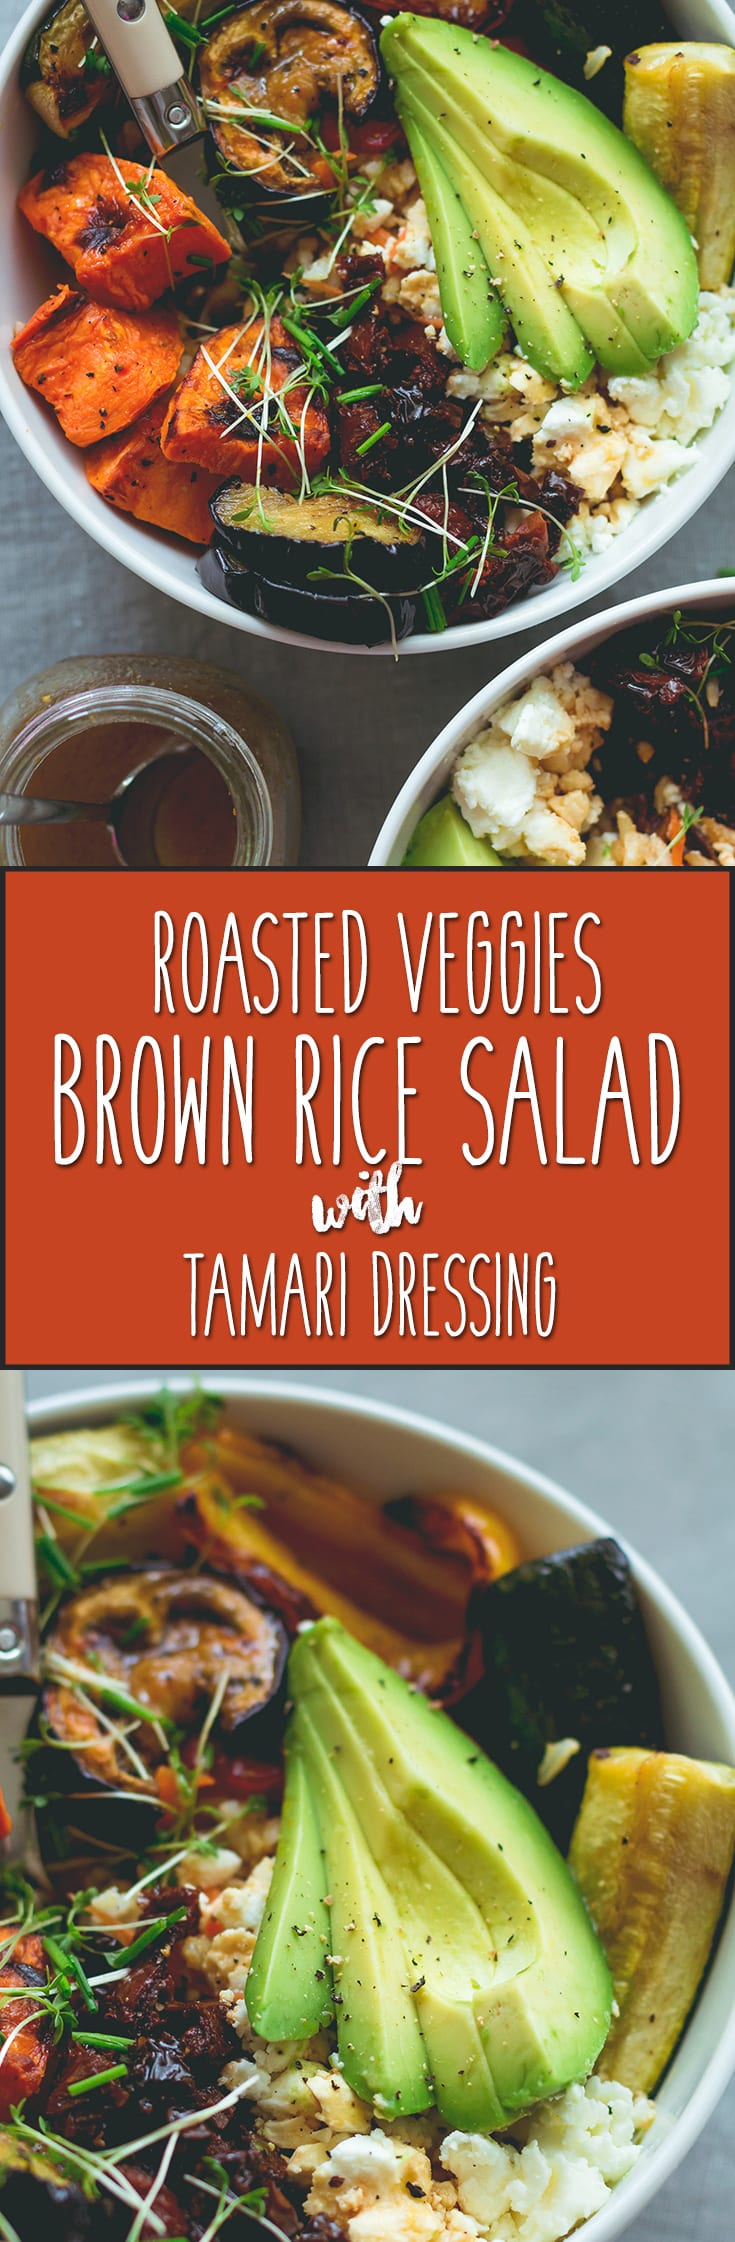 Brown Rice Salad Bowl with Roasted Veggies & Tamari Dressing - not your average boring salad! Roasted veggies, sweet potatoes, brown rice, lettuce, sundried tomatoes, goats cheese, and avocado with sweet & sour tamari dressing. Easy to make and absolutely scrumptious! | thehealthfulideas.com